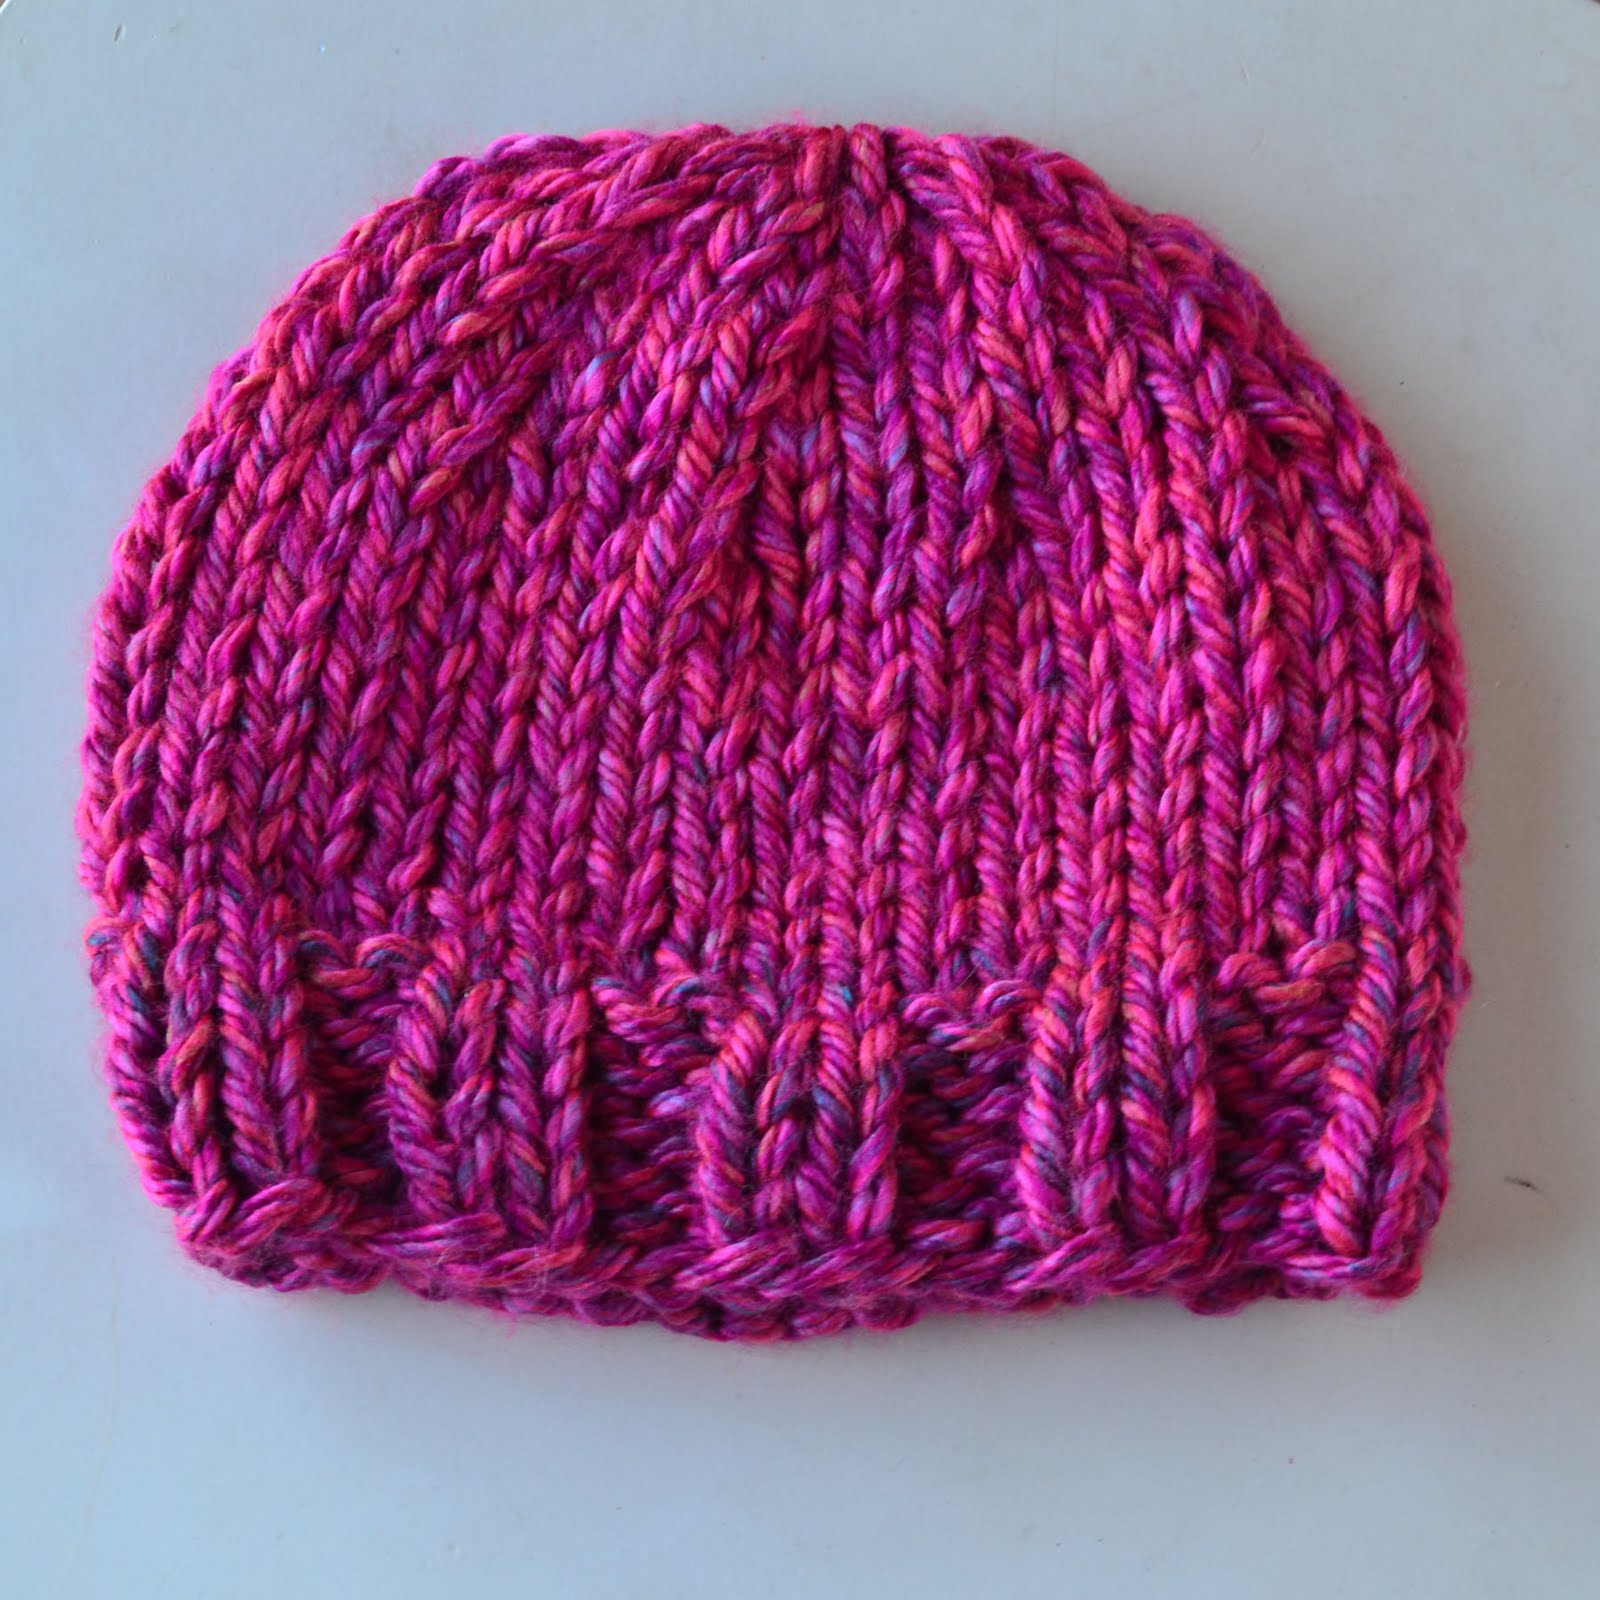 Knitting Patterns For Beanies With Straight Needles ~ Ipaa